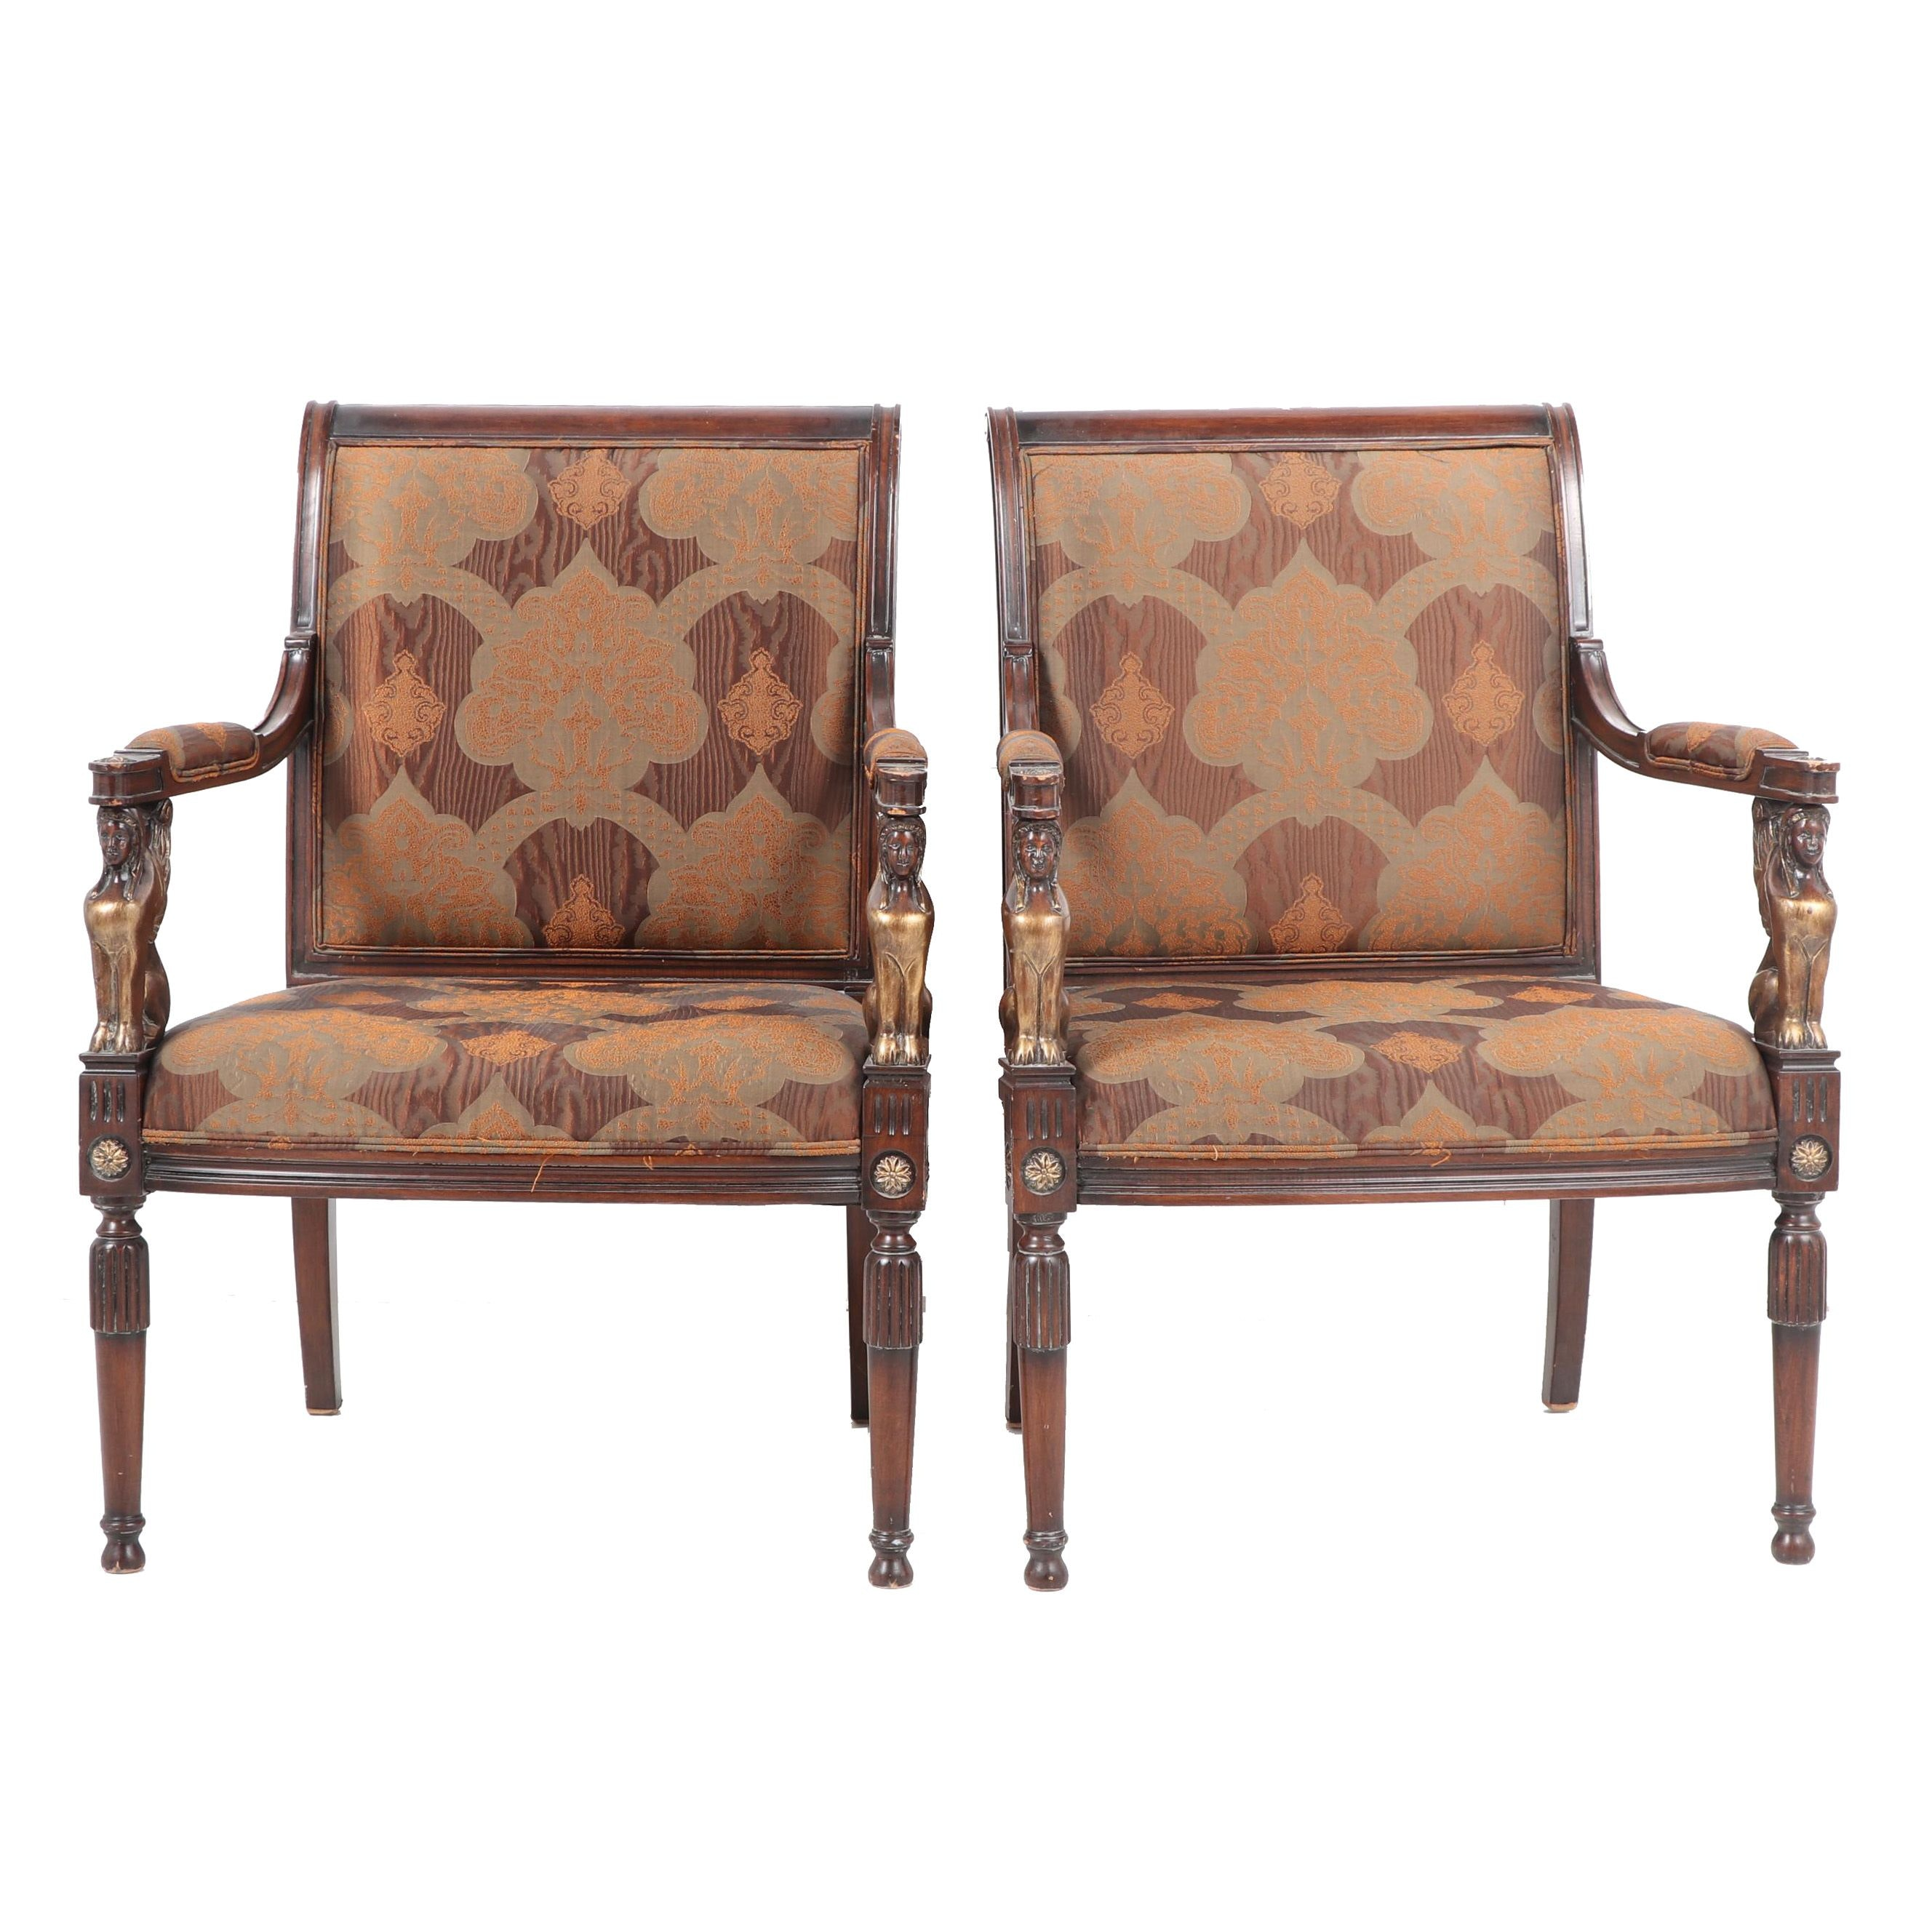 Pair of French Empire Style Upholstered Wooden Armchairs, Late 20th Century